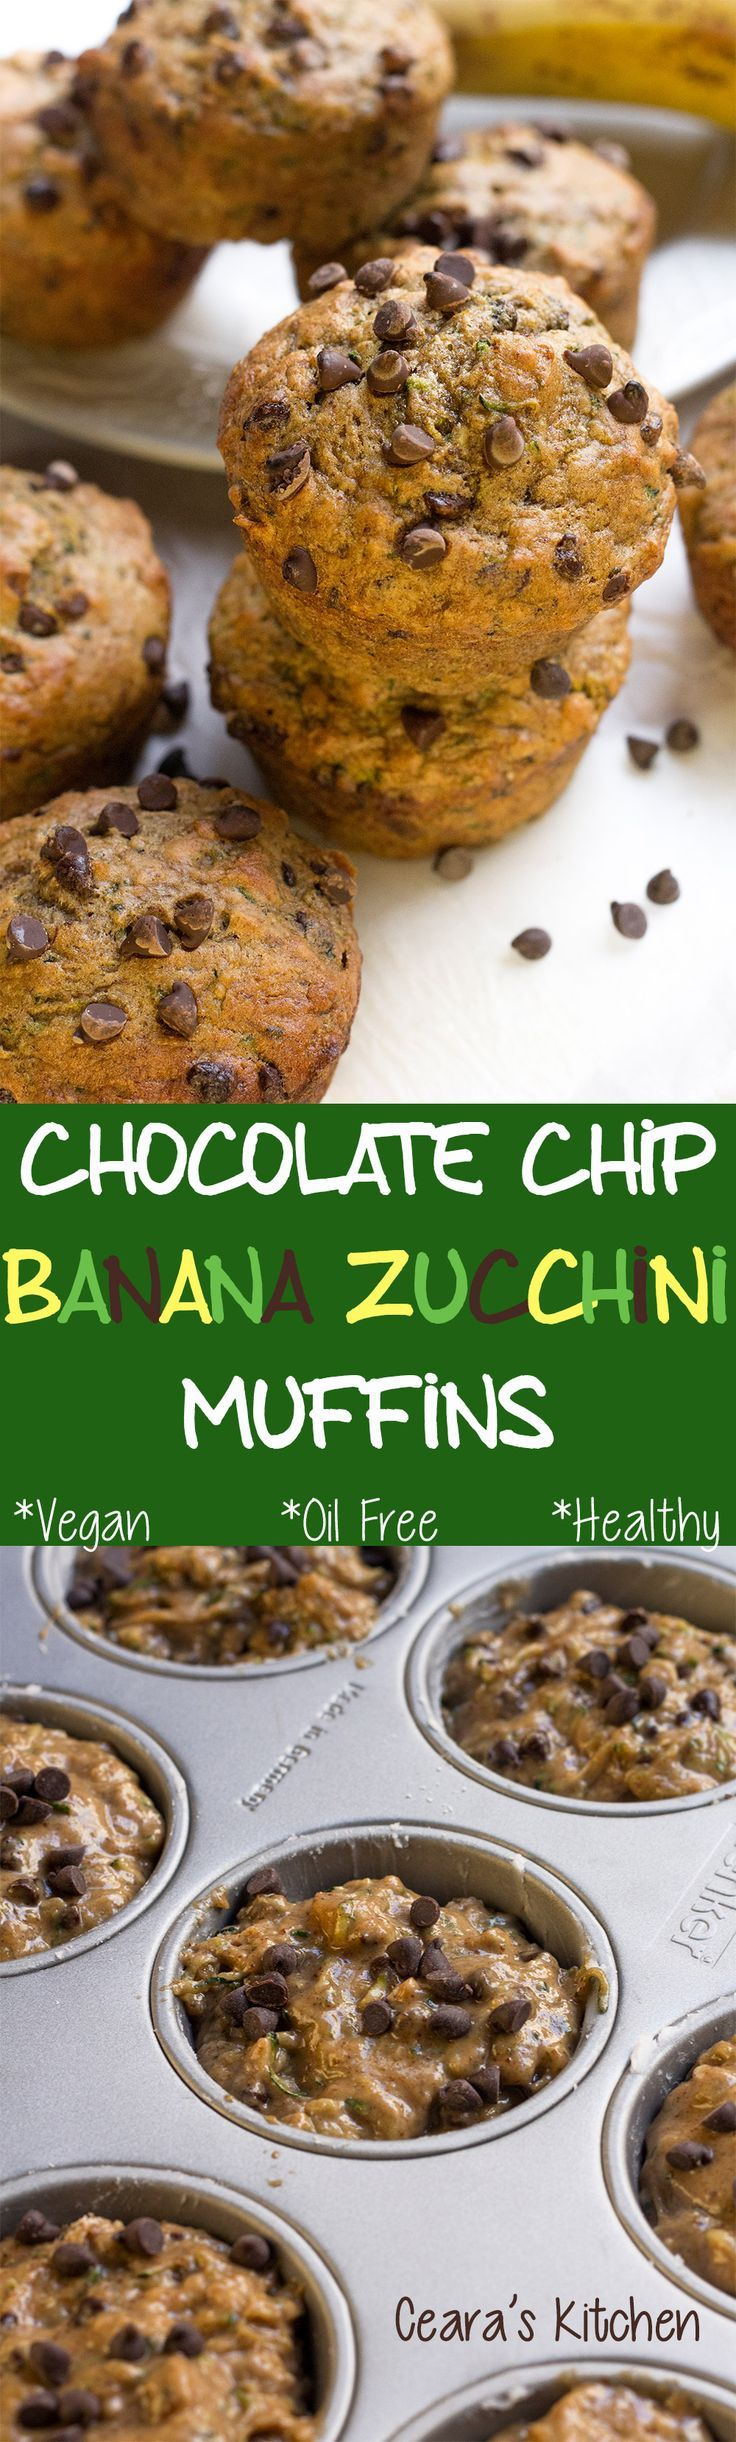 Chocolate Chip Banana Zucchini Muffins - my favorite banana bread EVER! They are SO incredibly moist, sweet and soft from the finely shredded zucchini + sweet banana! #Healthy #Vegan #OilFree #HealthyBaking #VeganBaking #Veganrecipe